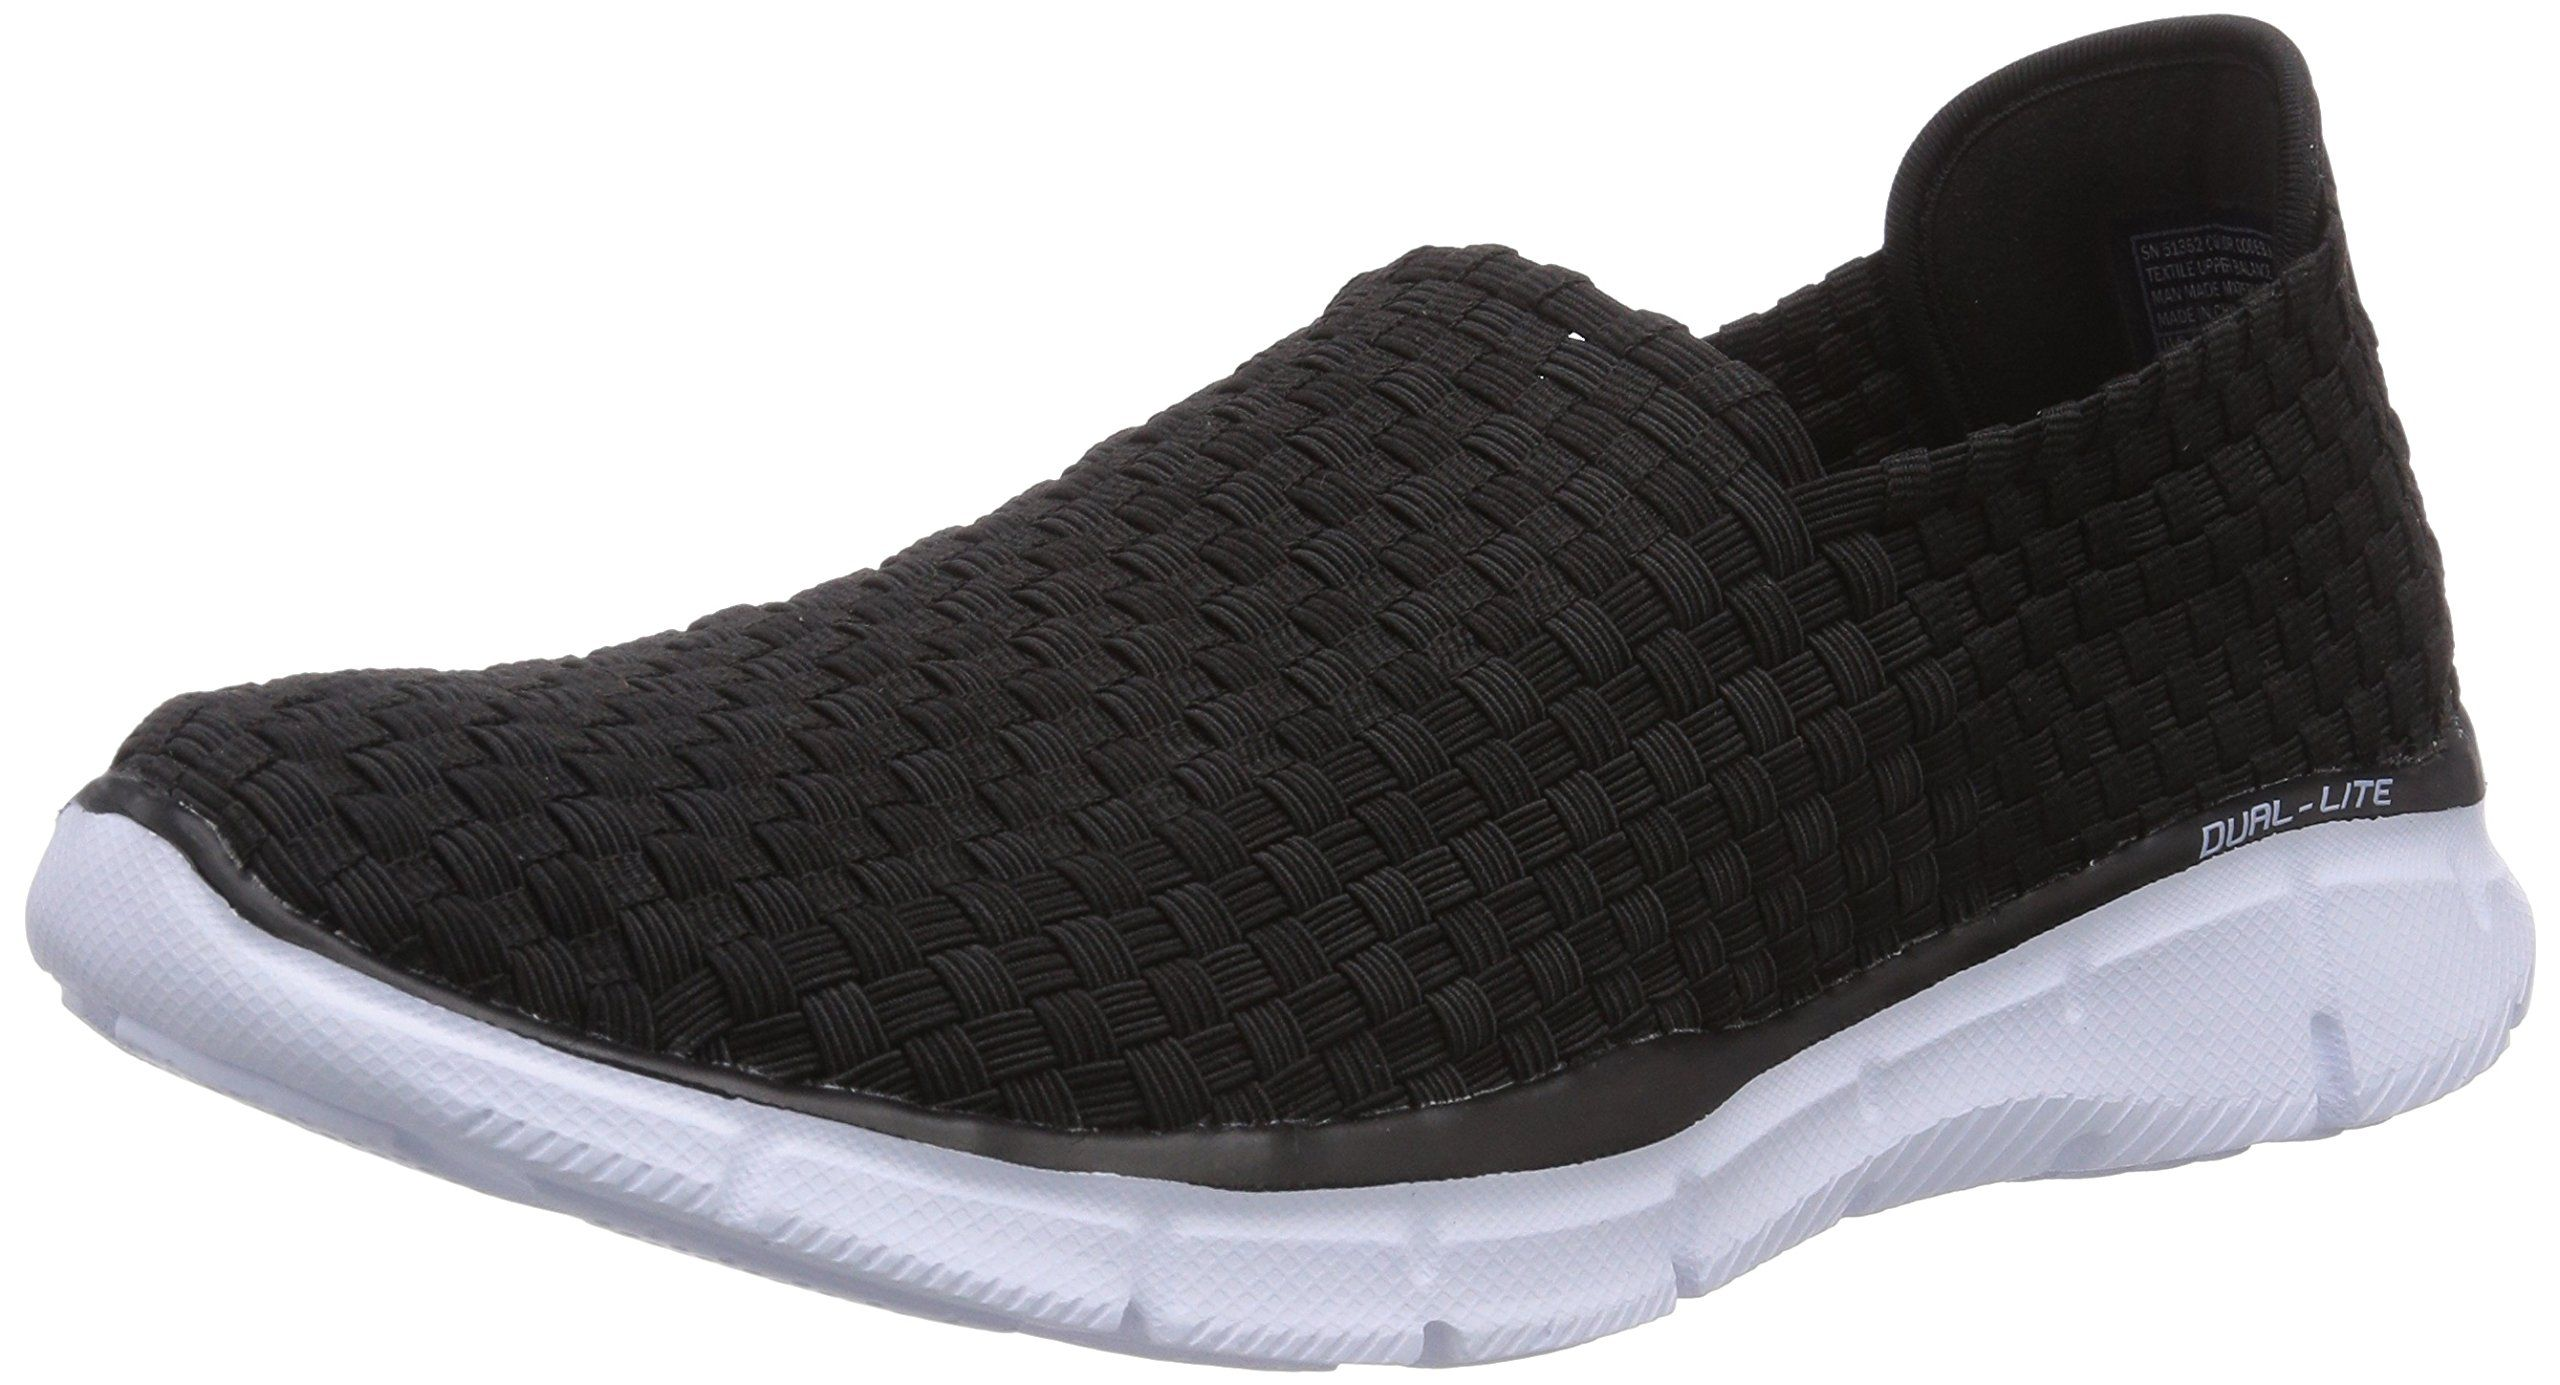 Amazon.com: Skechers Men's Equalizer - Familiar Walking Shoes - Black: Shoes